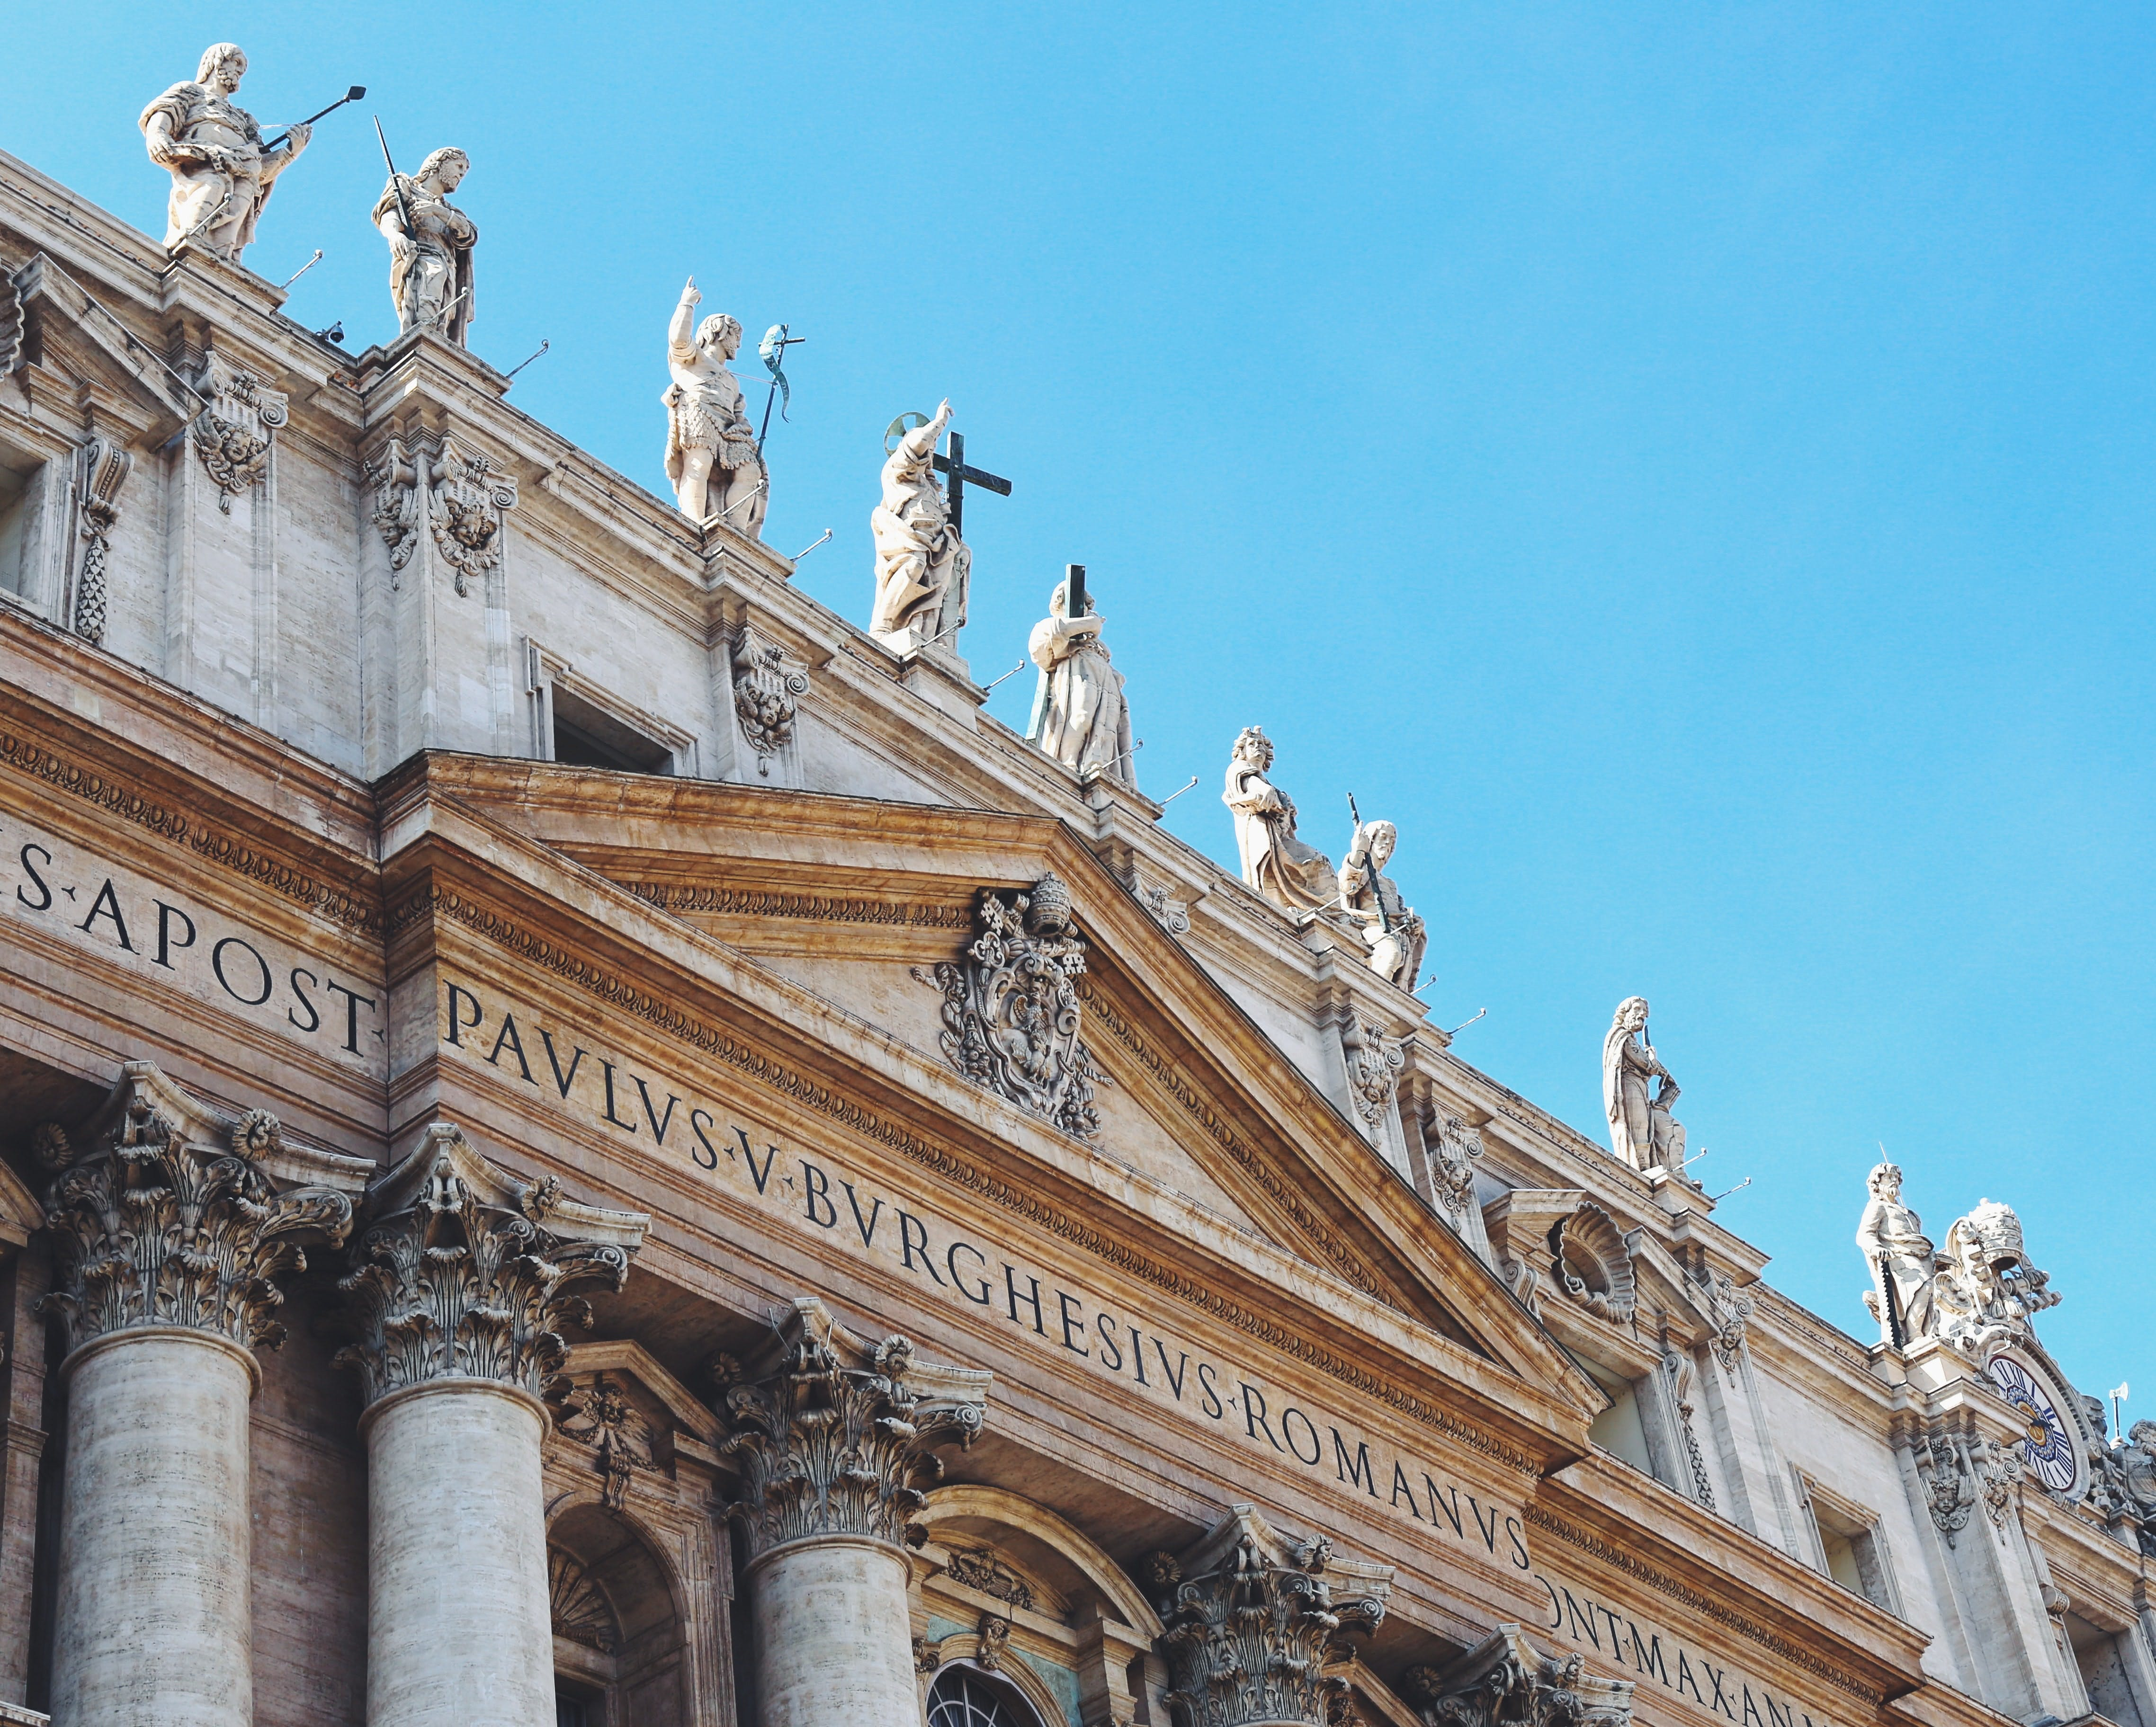 Picking The Right St. Peter's Basilica Guided Tour